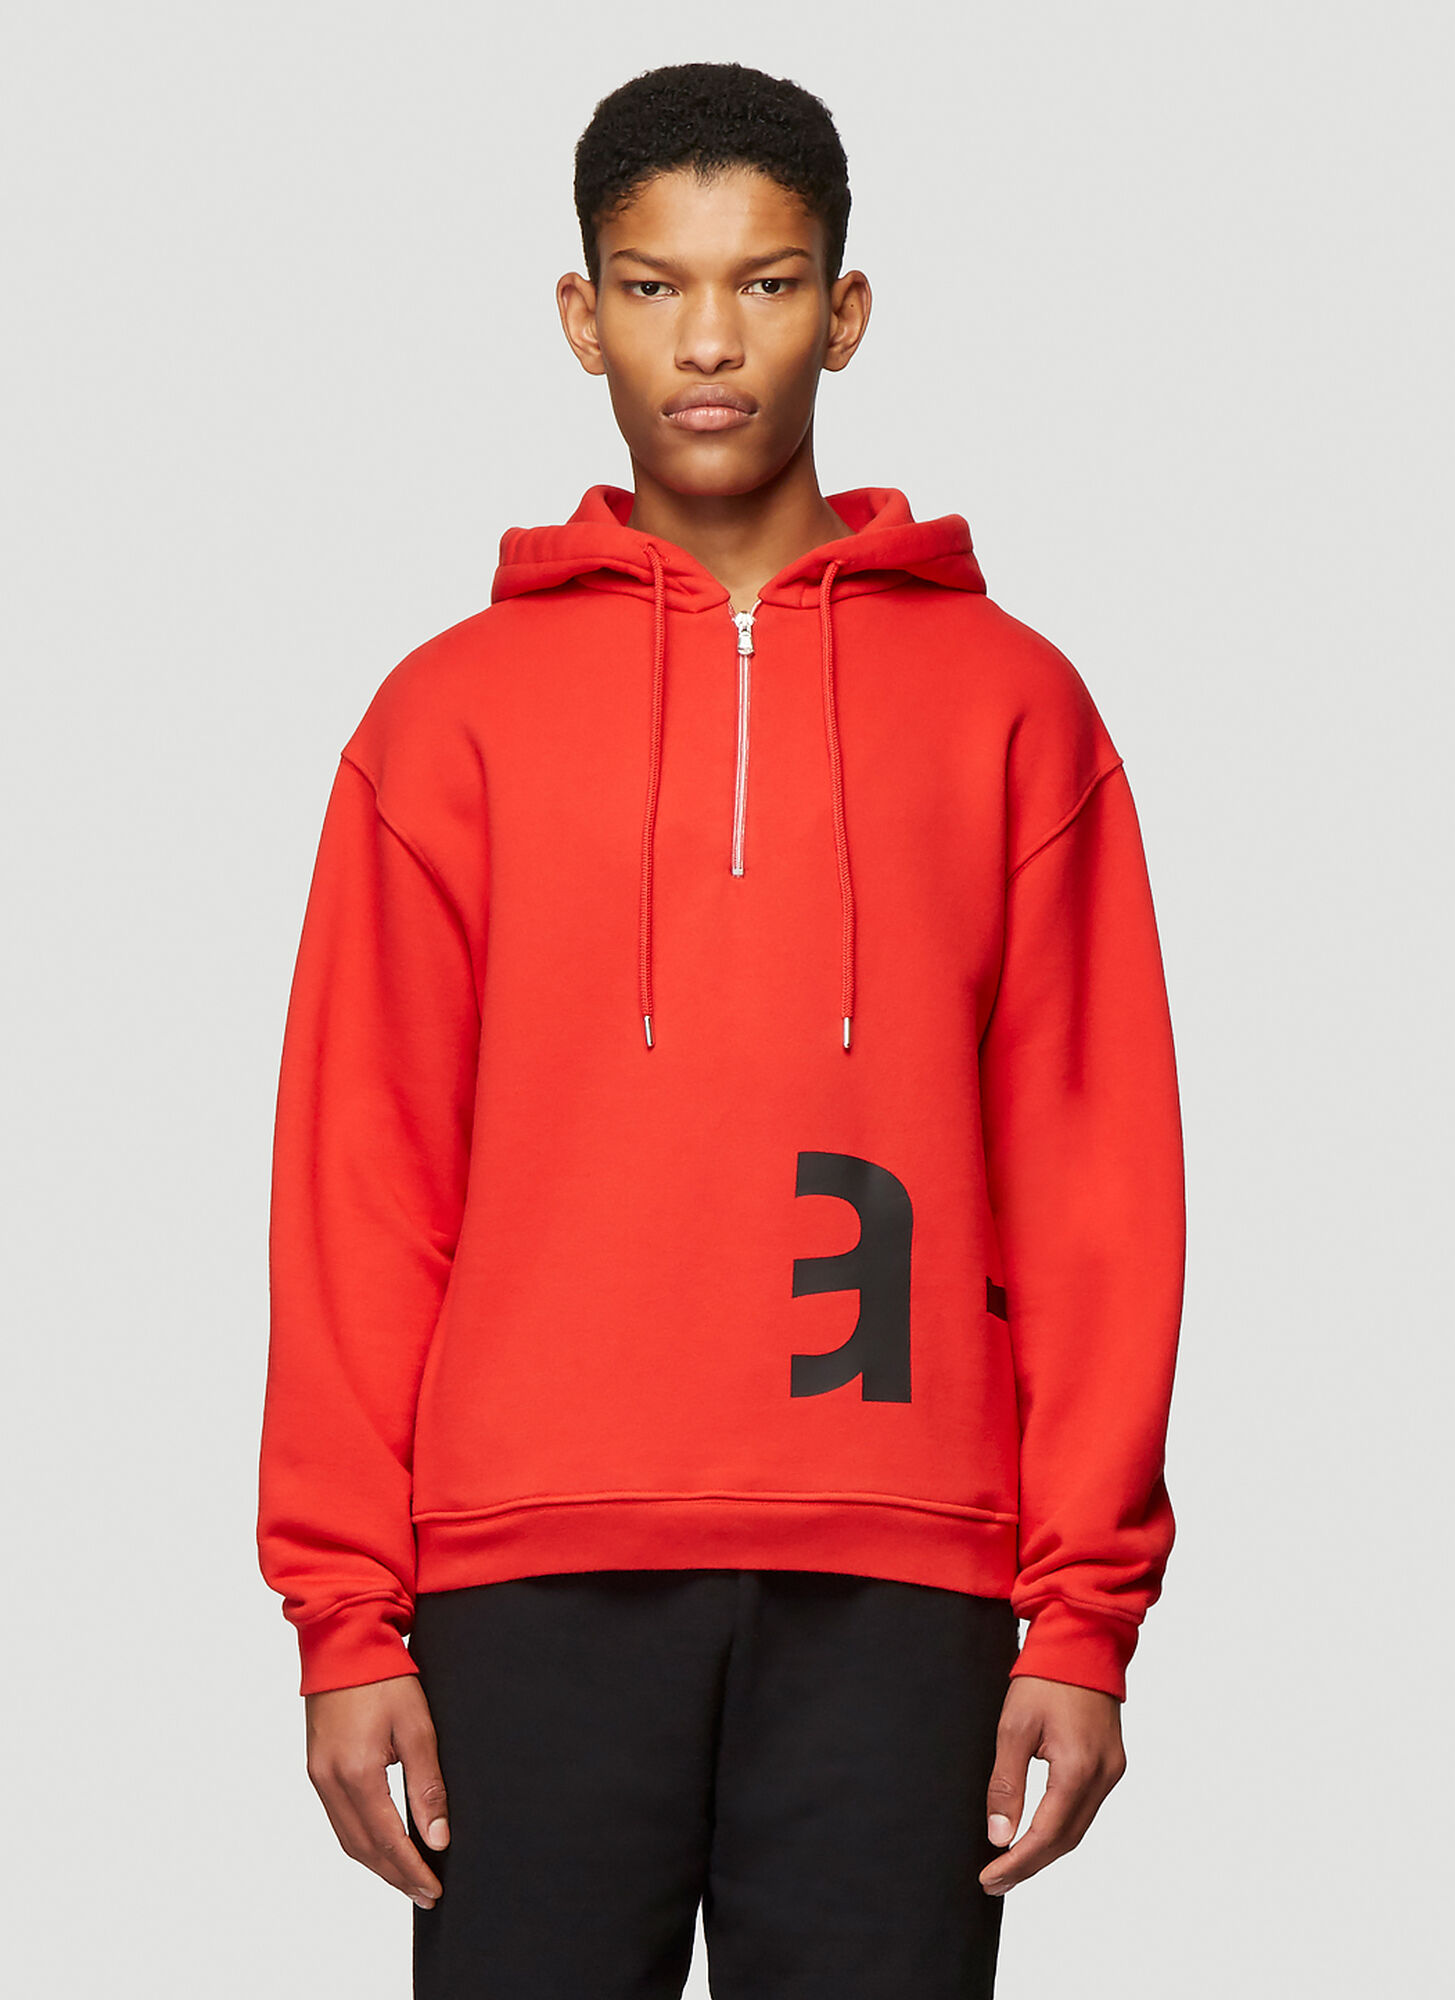 Artica-Arbox Logo Print Hooded Sweatshirt in Red size S